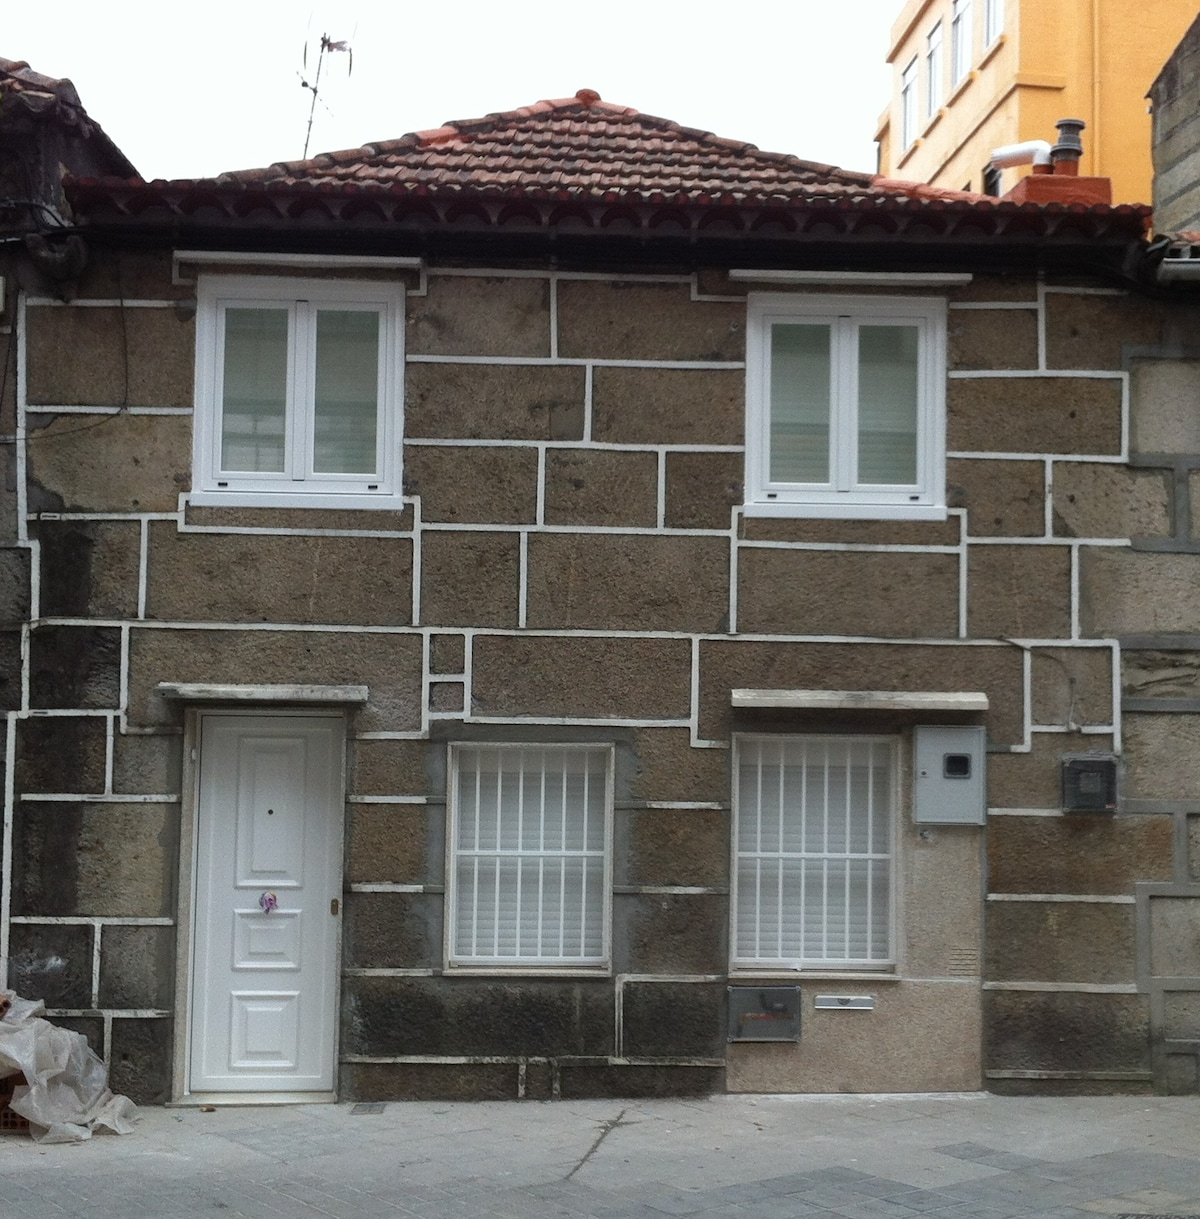 Stone facade with white aluminium door and windows. Casa de piedra original.